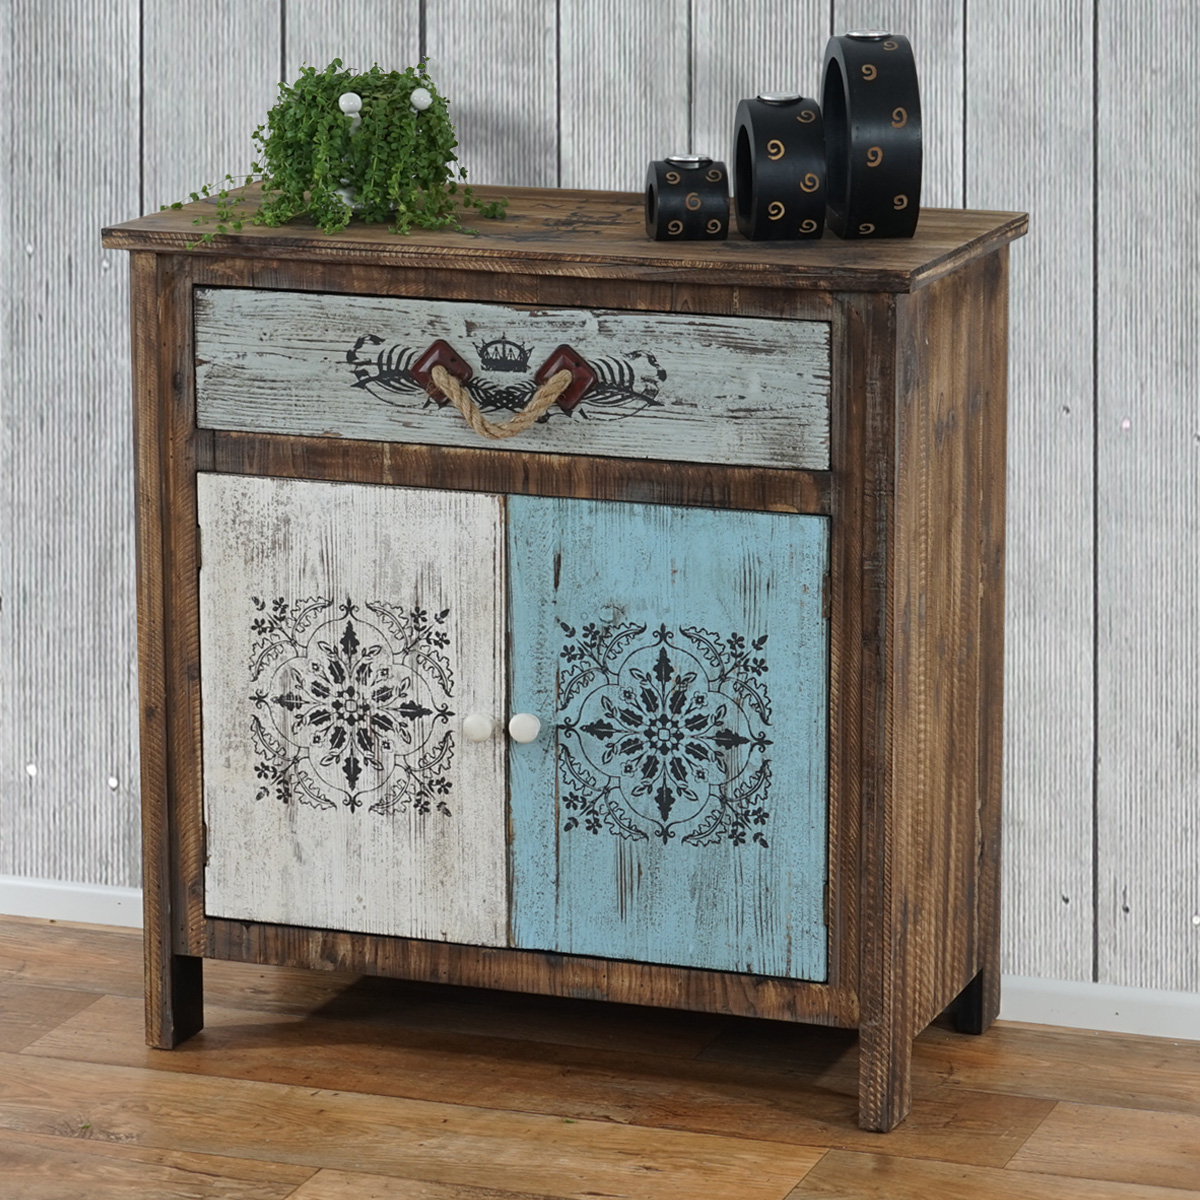 kommode aveiro sideboard schubladenschrank schrank shabby look vintage ebay. Black Bedroom Furniture Sets. Home Design Ideas